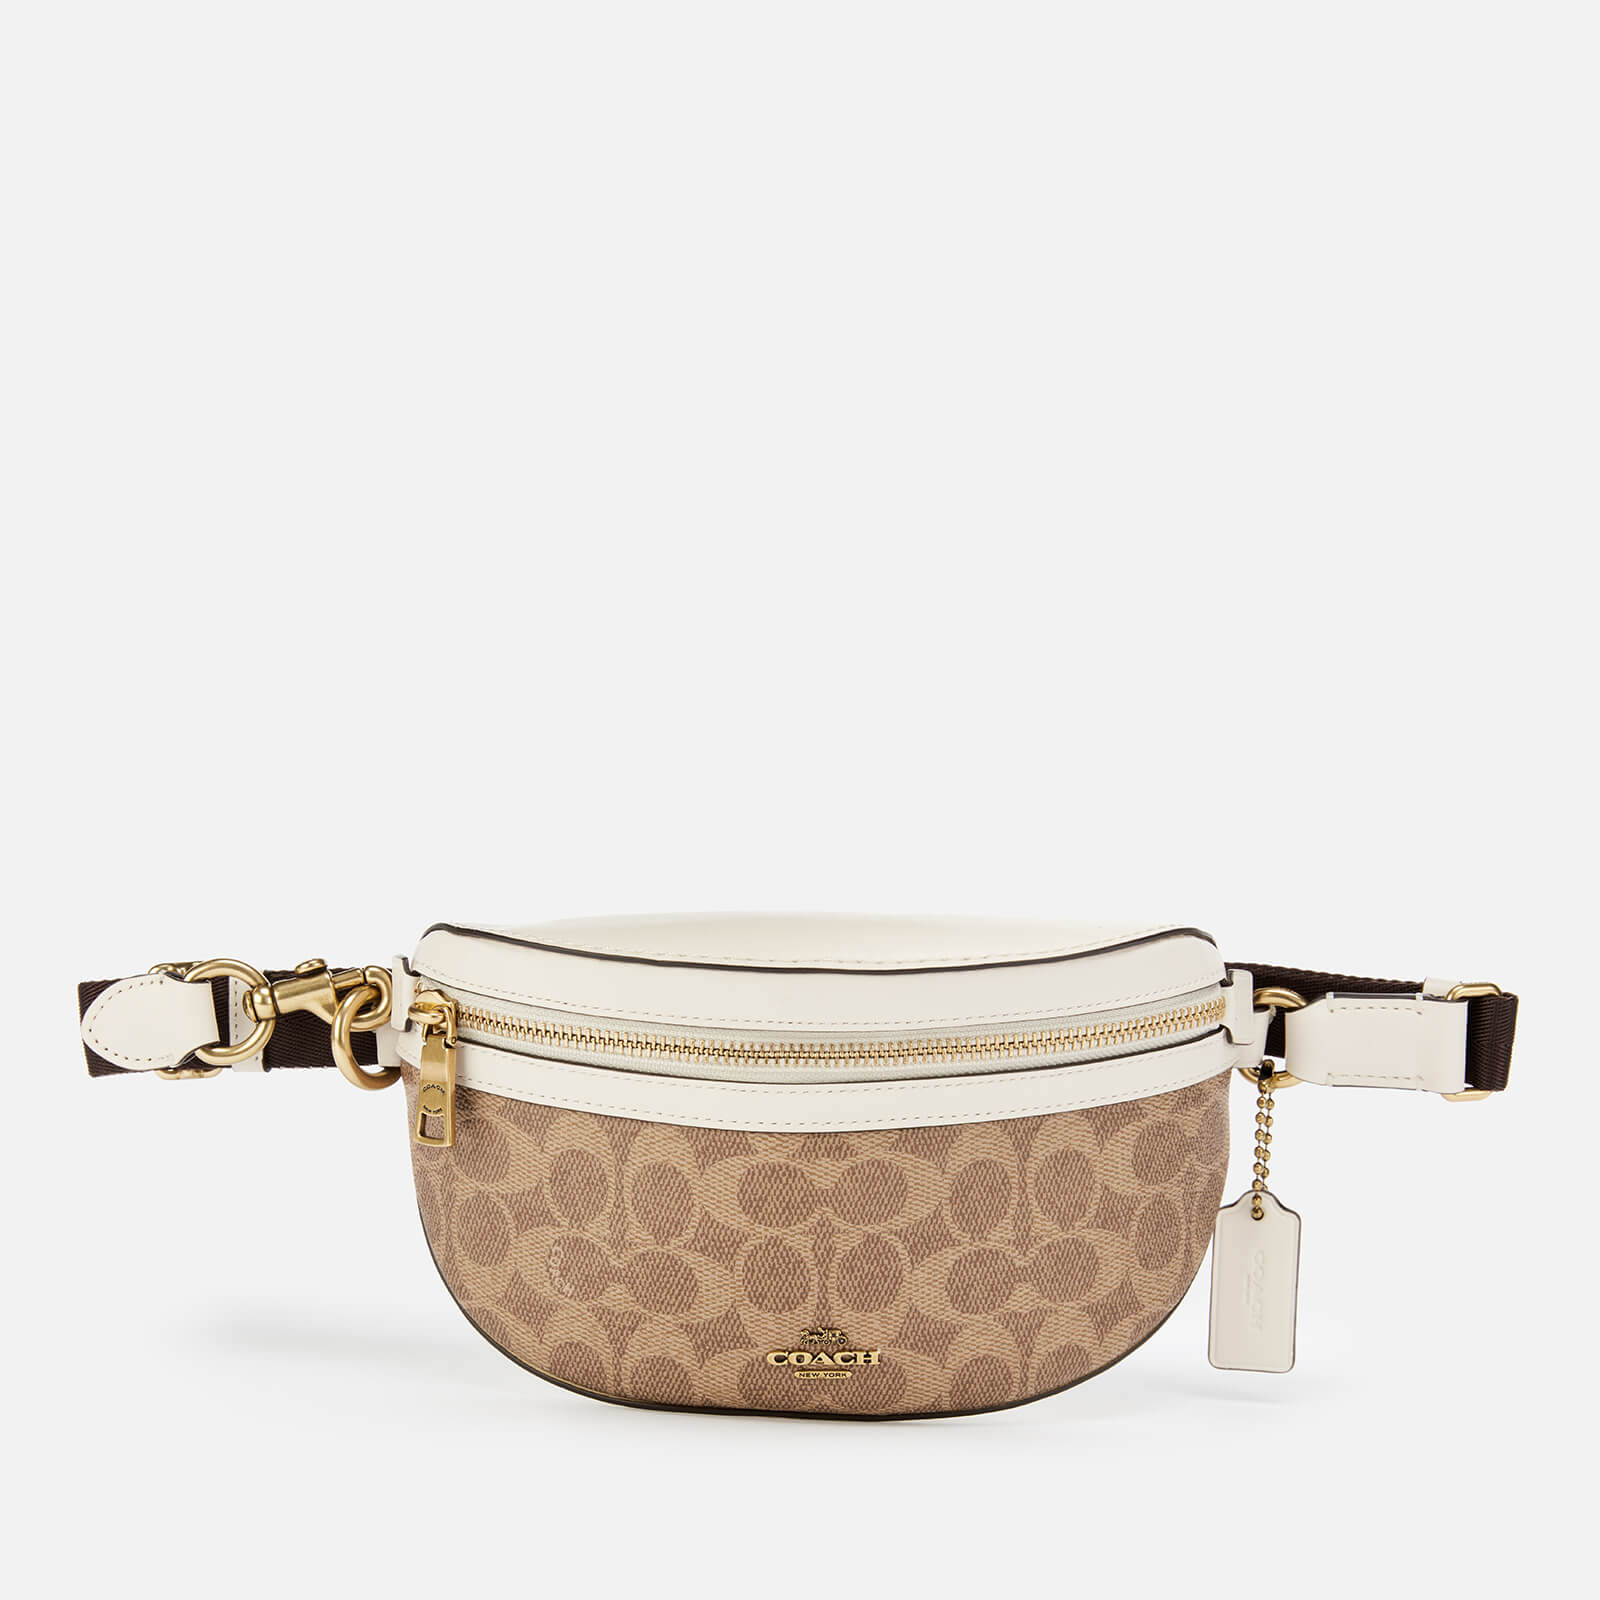 Coach Women's Coated Canvas Signature Belt Bag - Tan Chalk